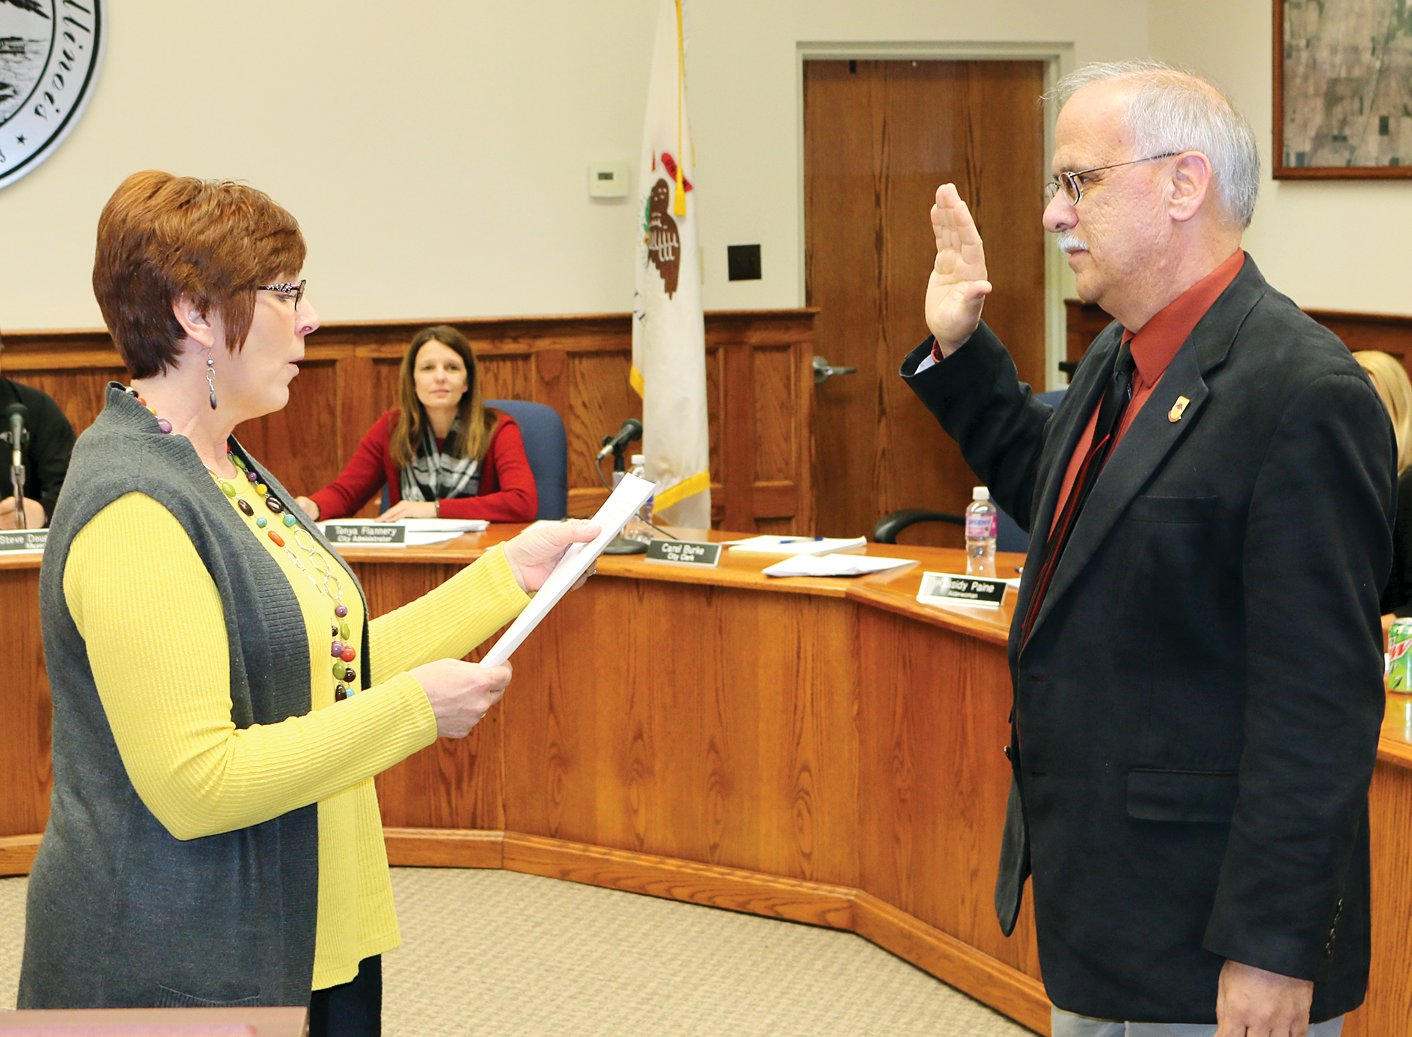 Litchfield City Clerk Carol Burke swore in new fire chief Joe Holomy to begin the Litchfield City Council meeting on Thursday, March 7. Holomy has 43 years in the fire service industry and was previously the chief of the Effingham Fire Department.